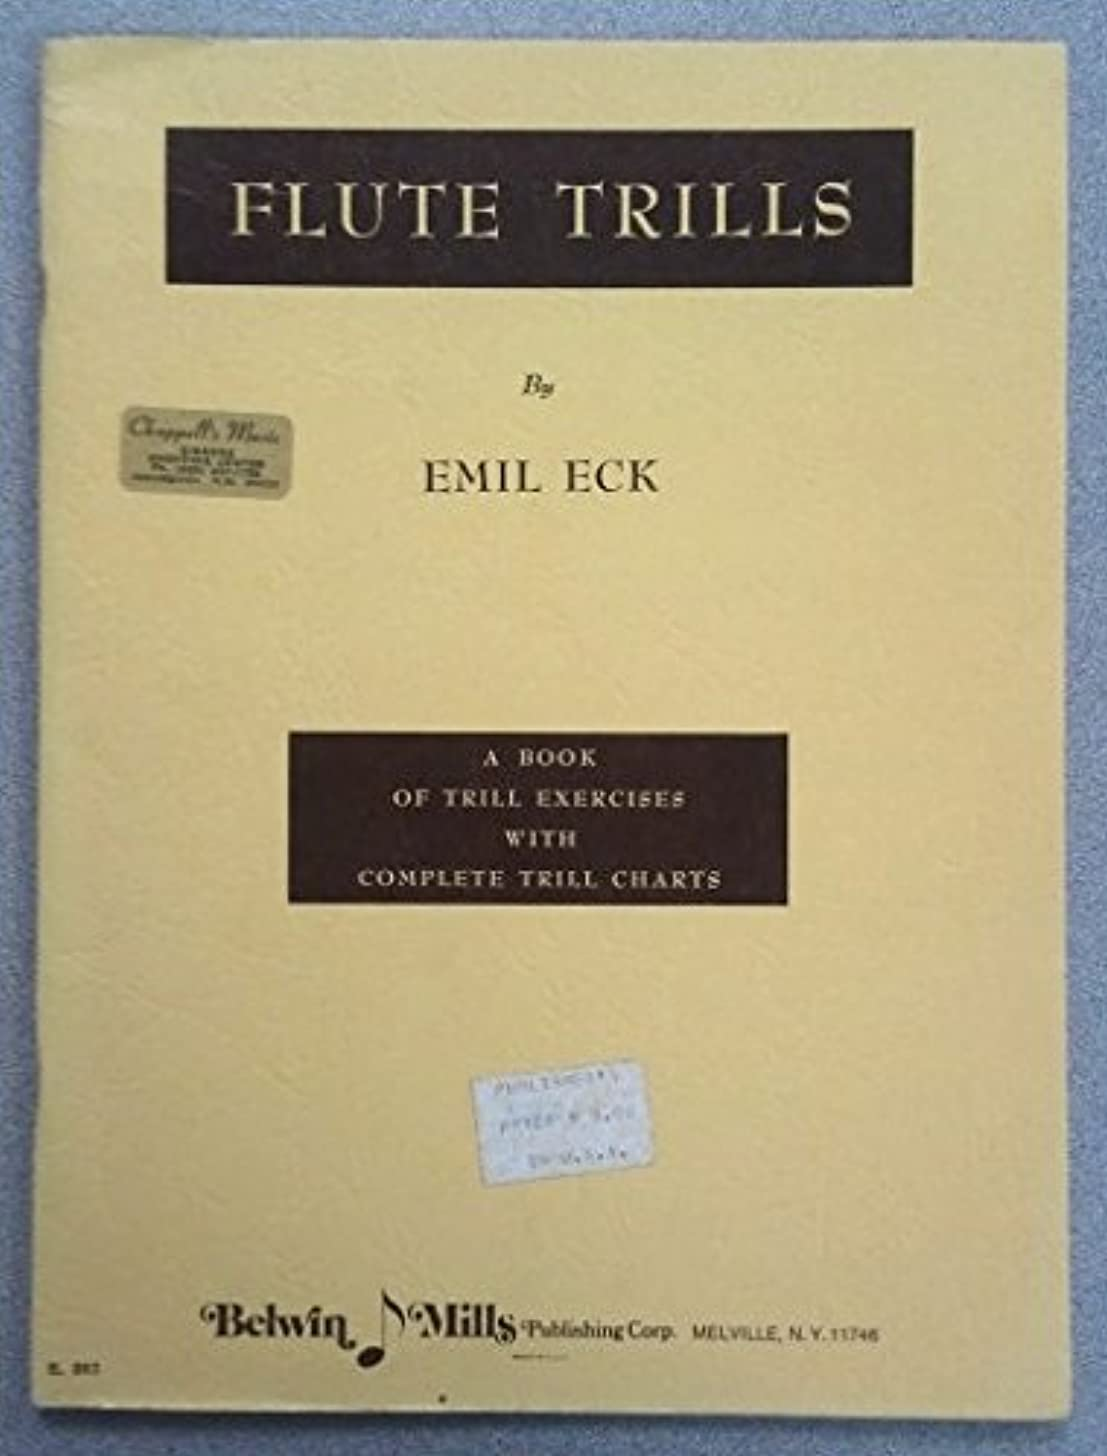 Flute Trills - A Book of Trill Exercises with Complete Trill Charts